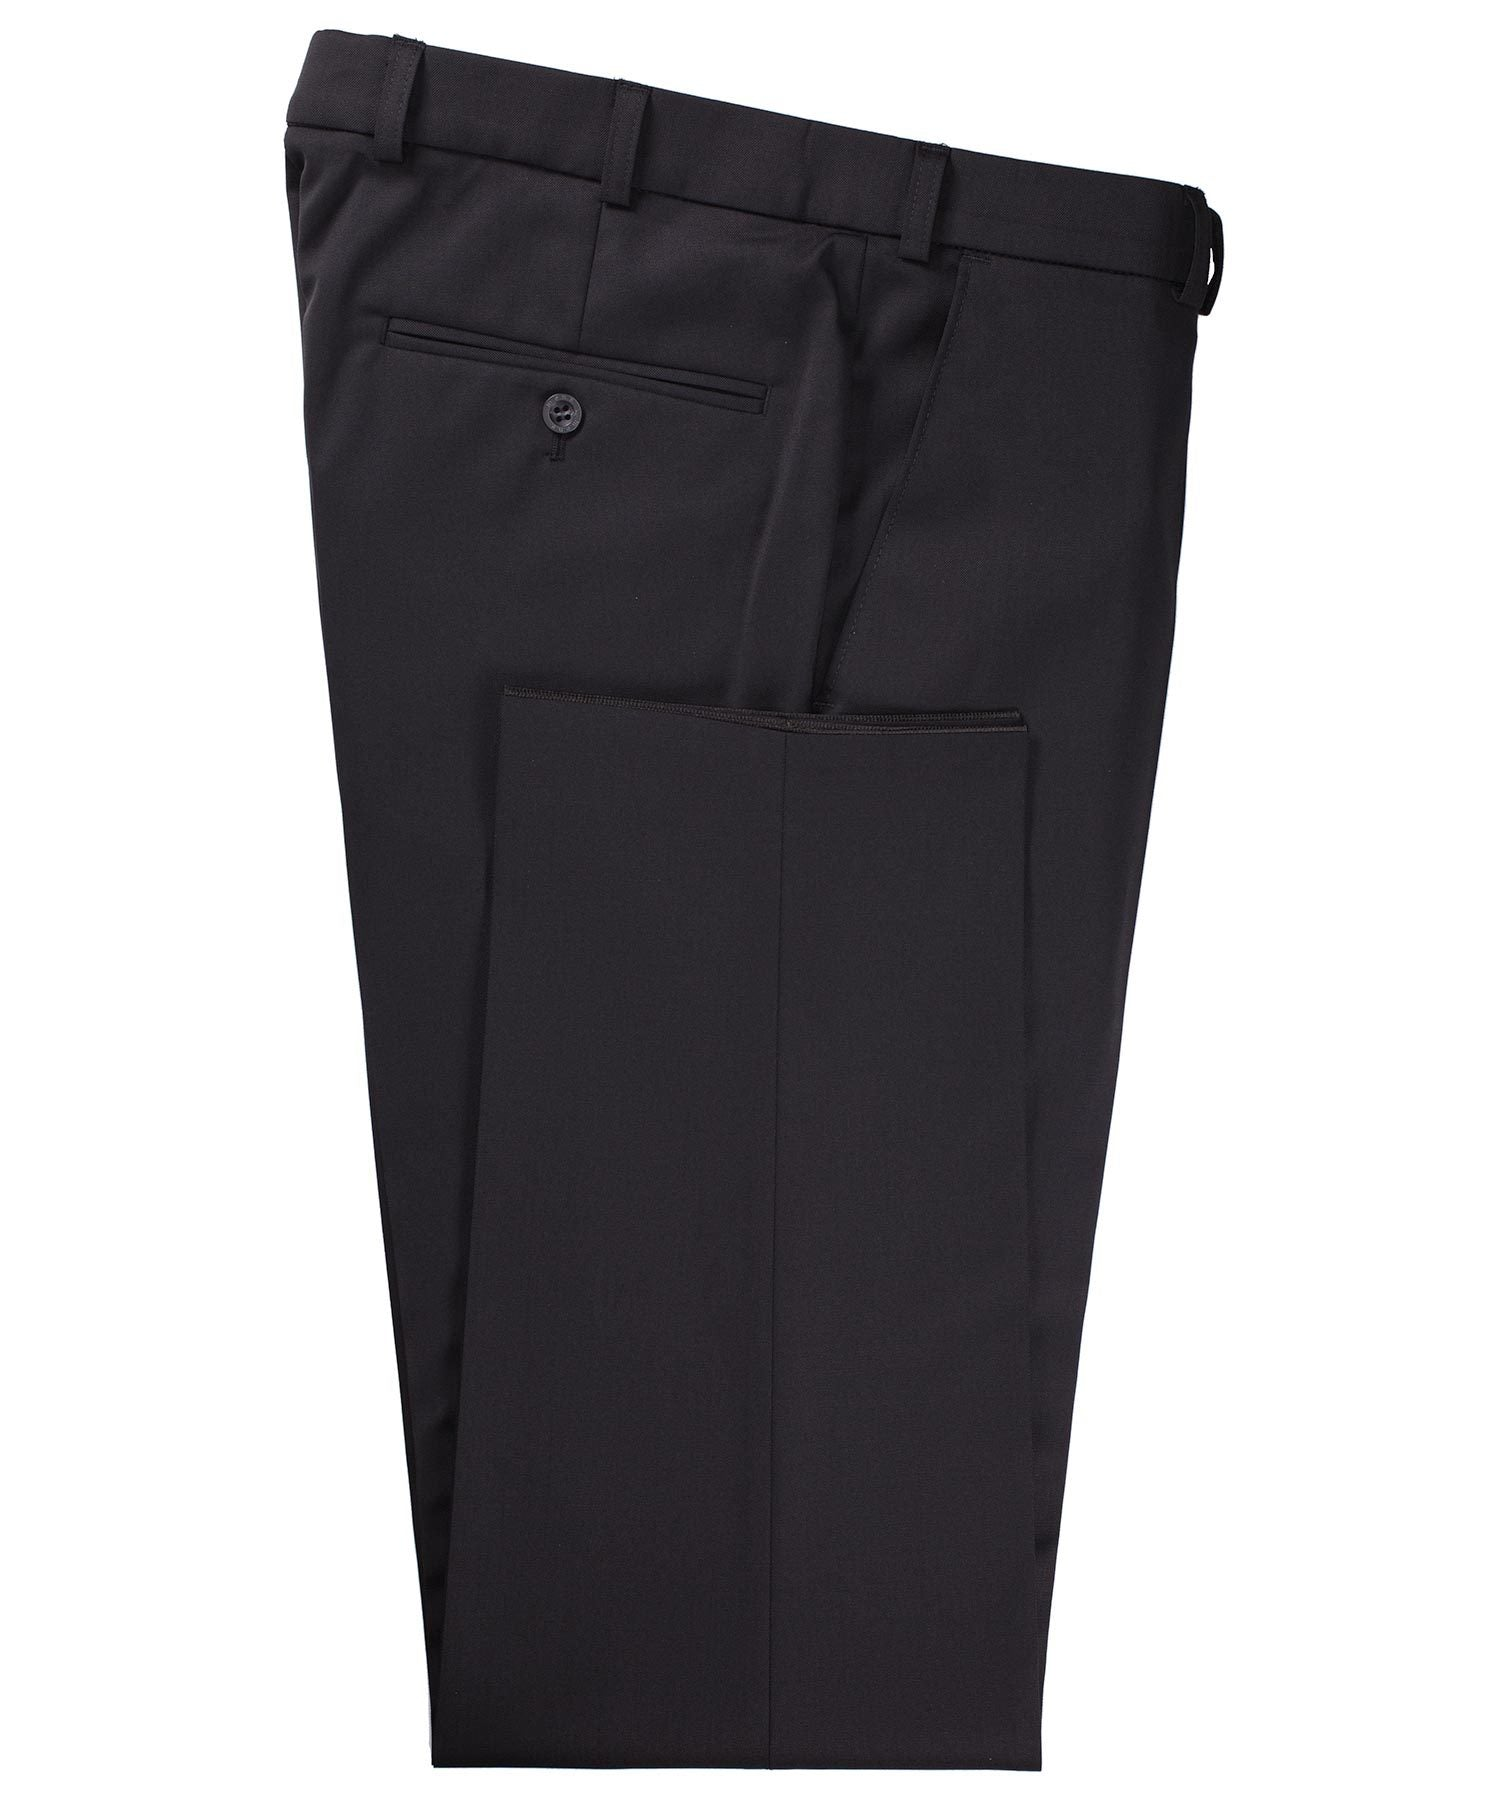 Madrid Black Separates Pant